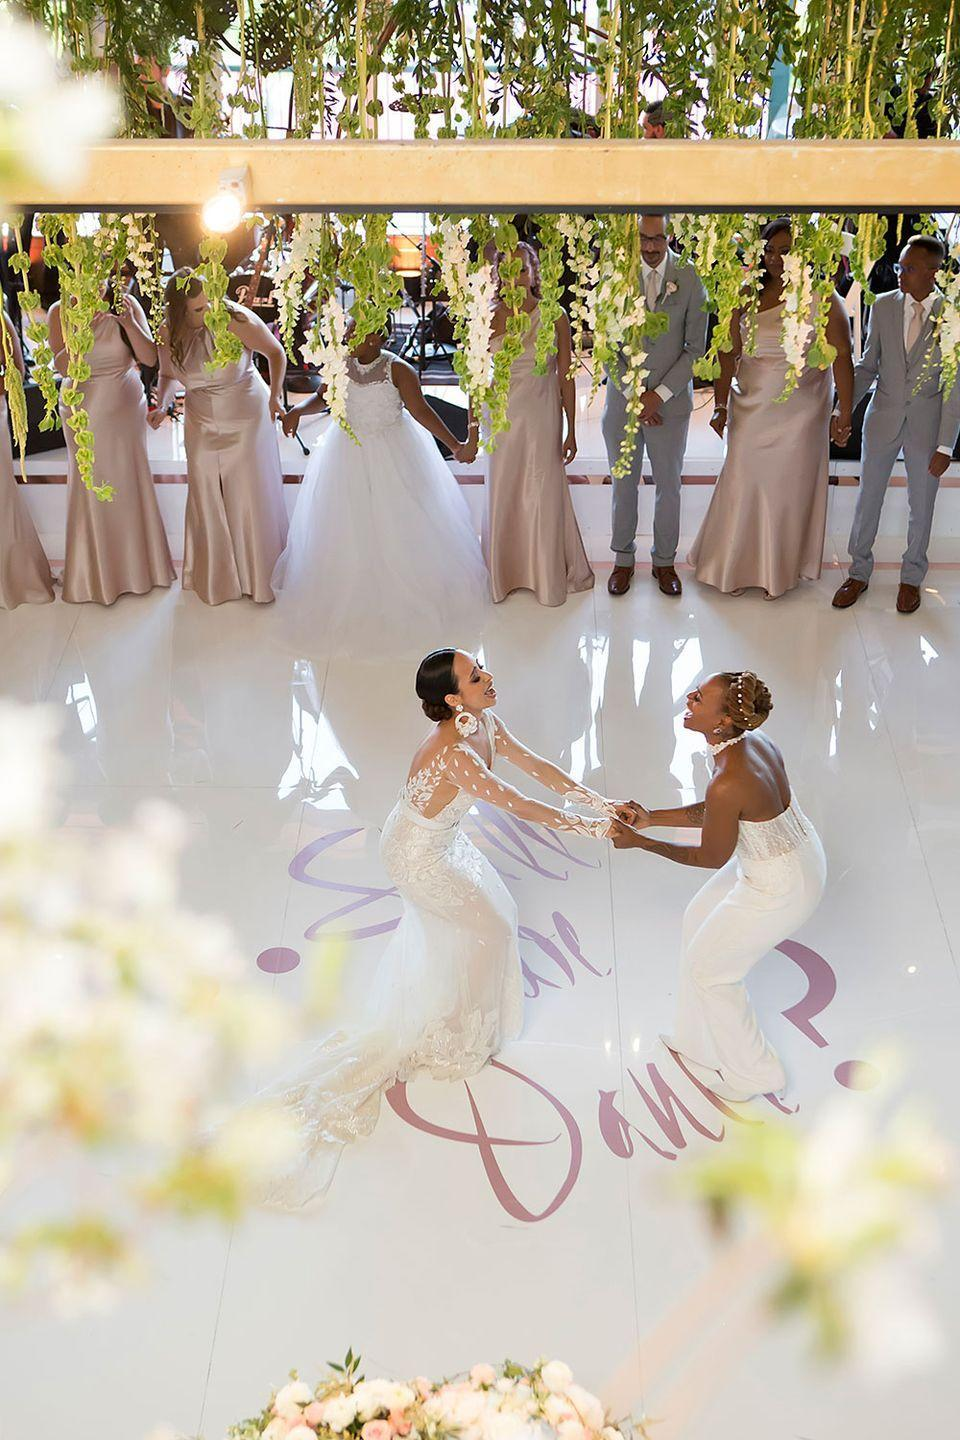 """<p>Everyone cleared the dance floor to watch Yani and Divinity have a musical moment together at their wedding on May 19, 2019. """"Twelve years ago Beyoncé may have brought us together, but on our wedding day, we certainly chose to put our 'Love on Top'!""""</p>"""